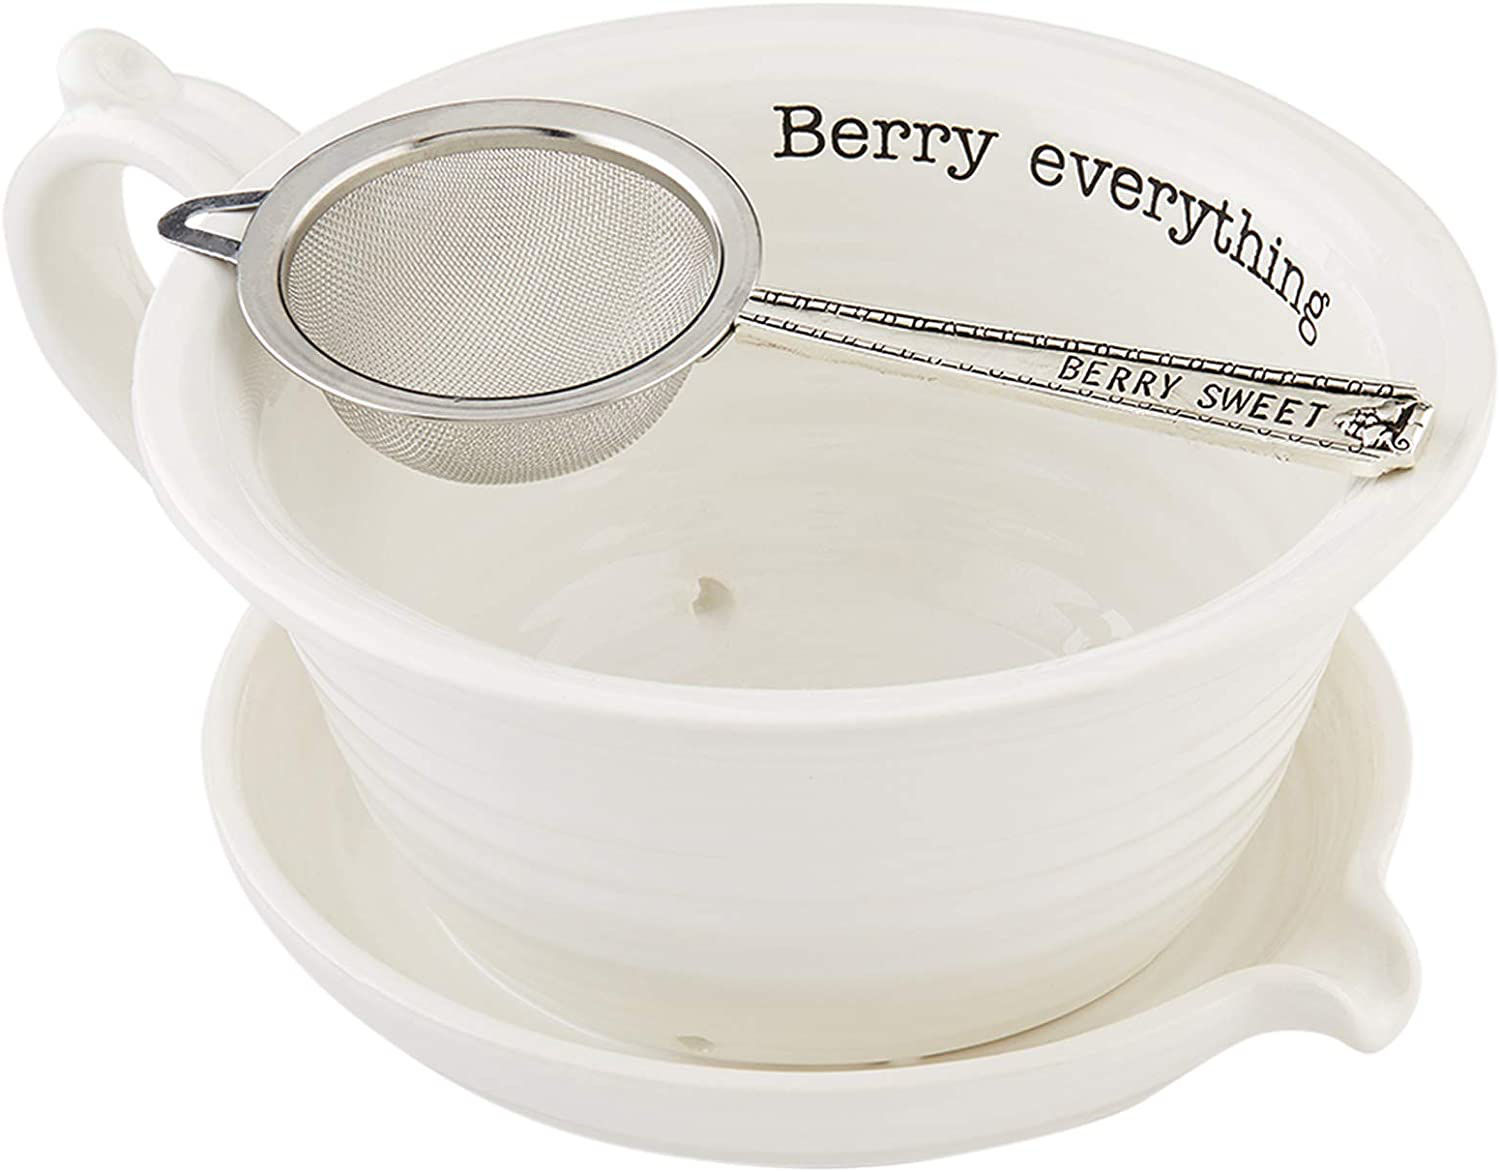 Circa Berry Strainer by Mudpie